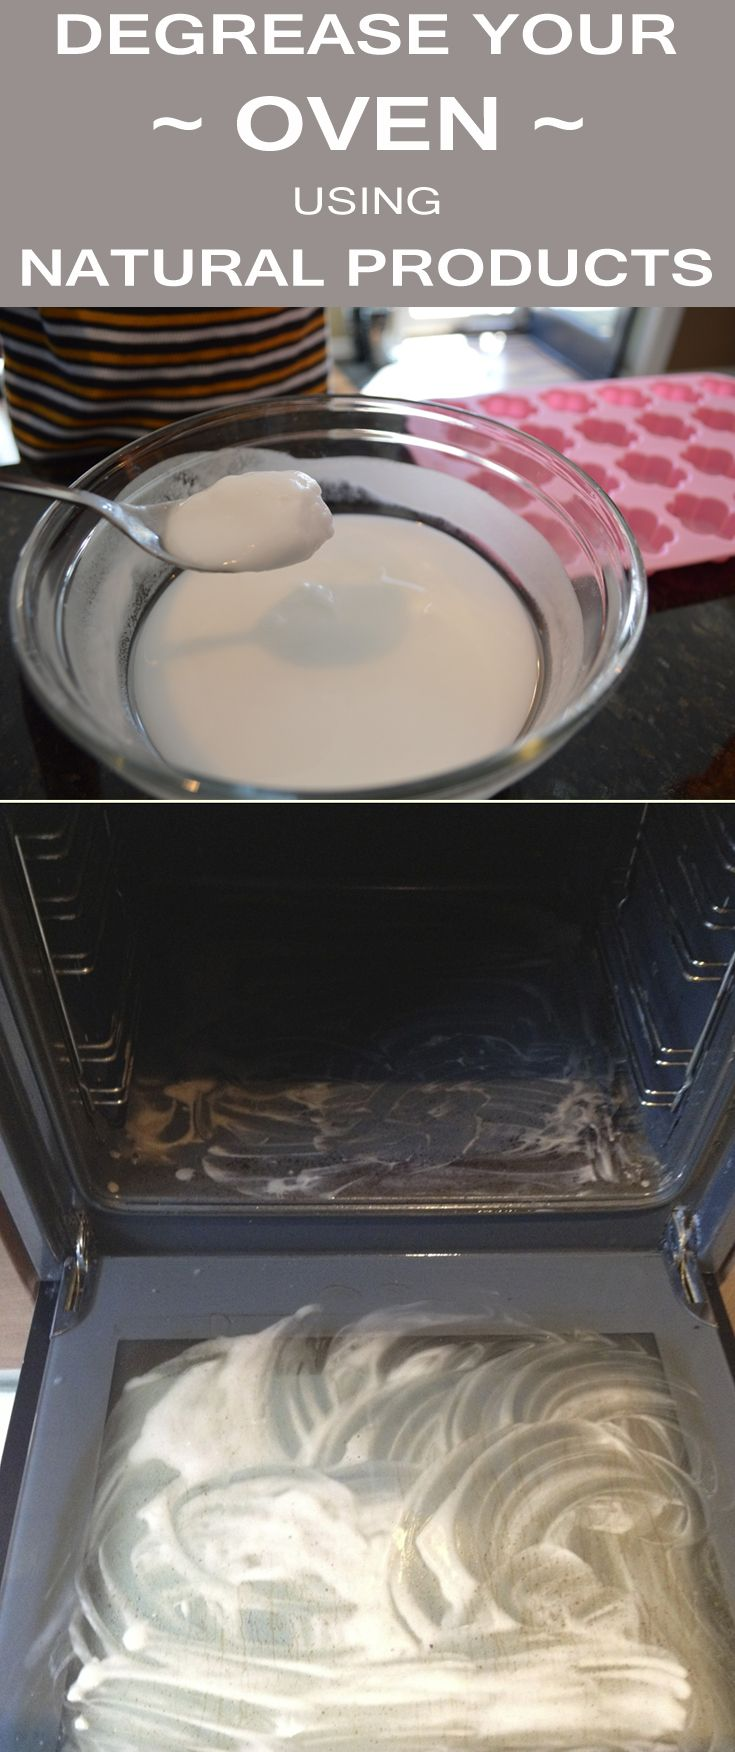 Degrease your oven using natural products household cleaning